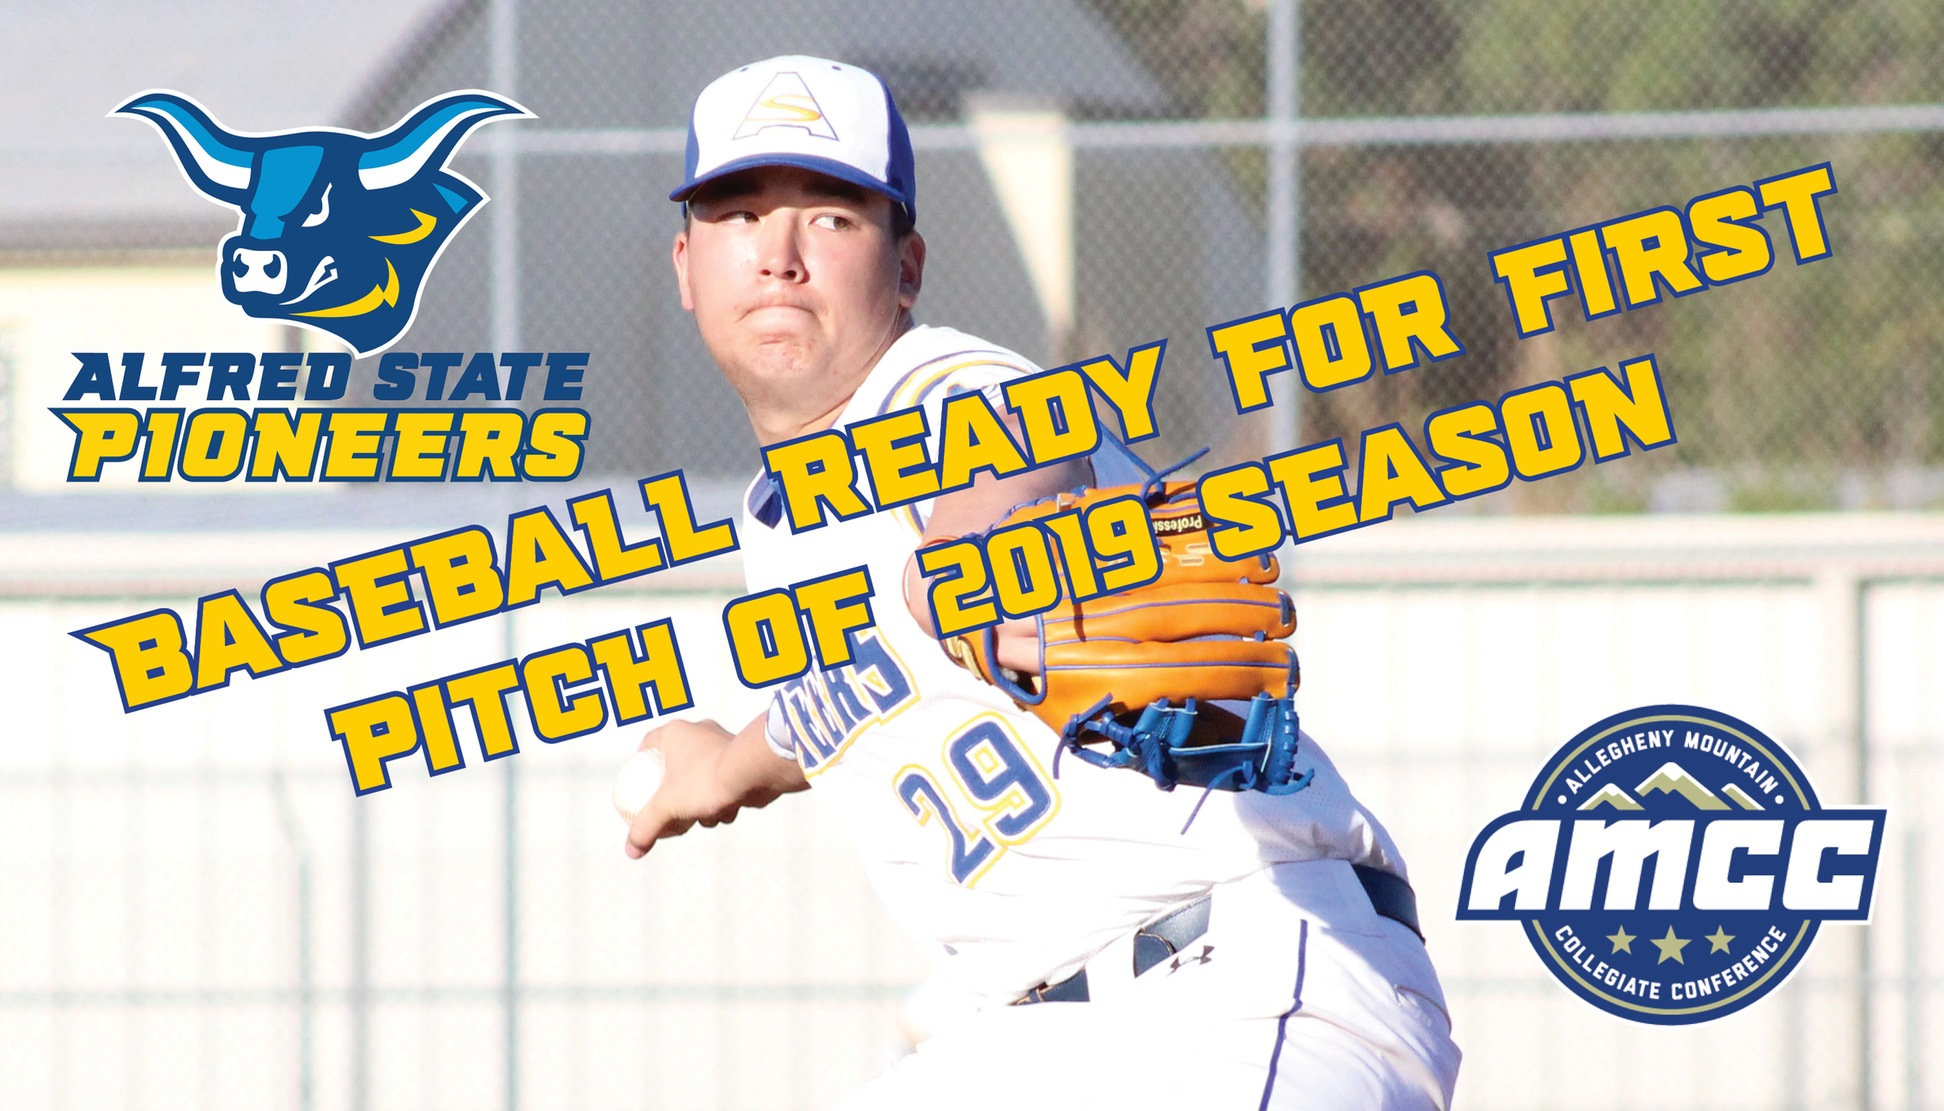 Baseball team starts season this weekend - 2019 Baseball Preview